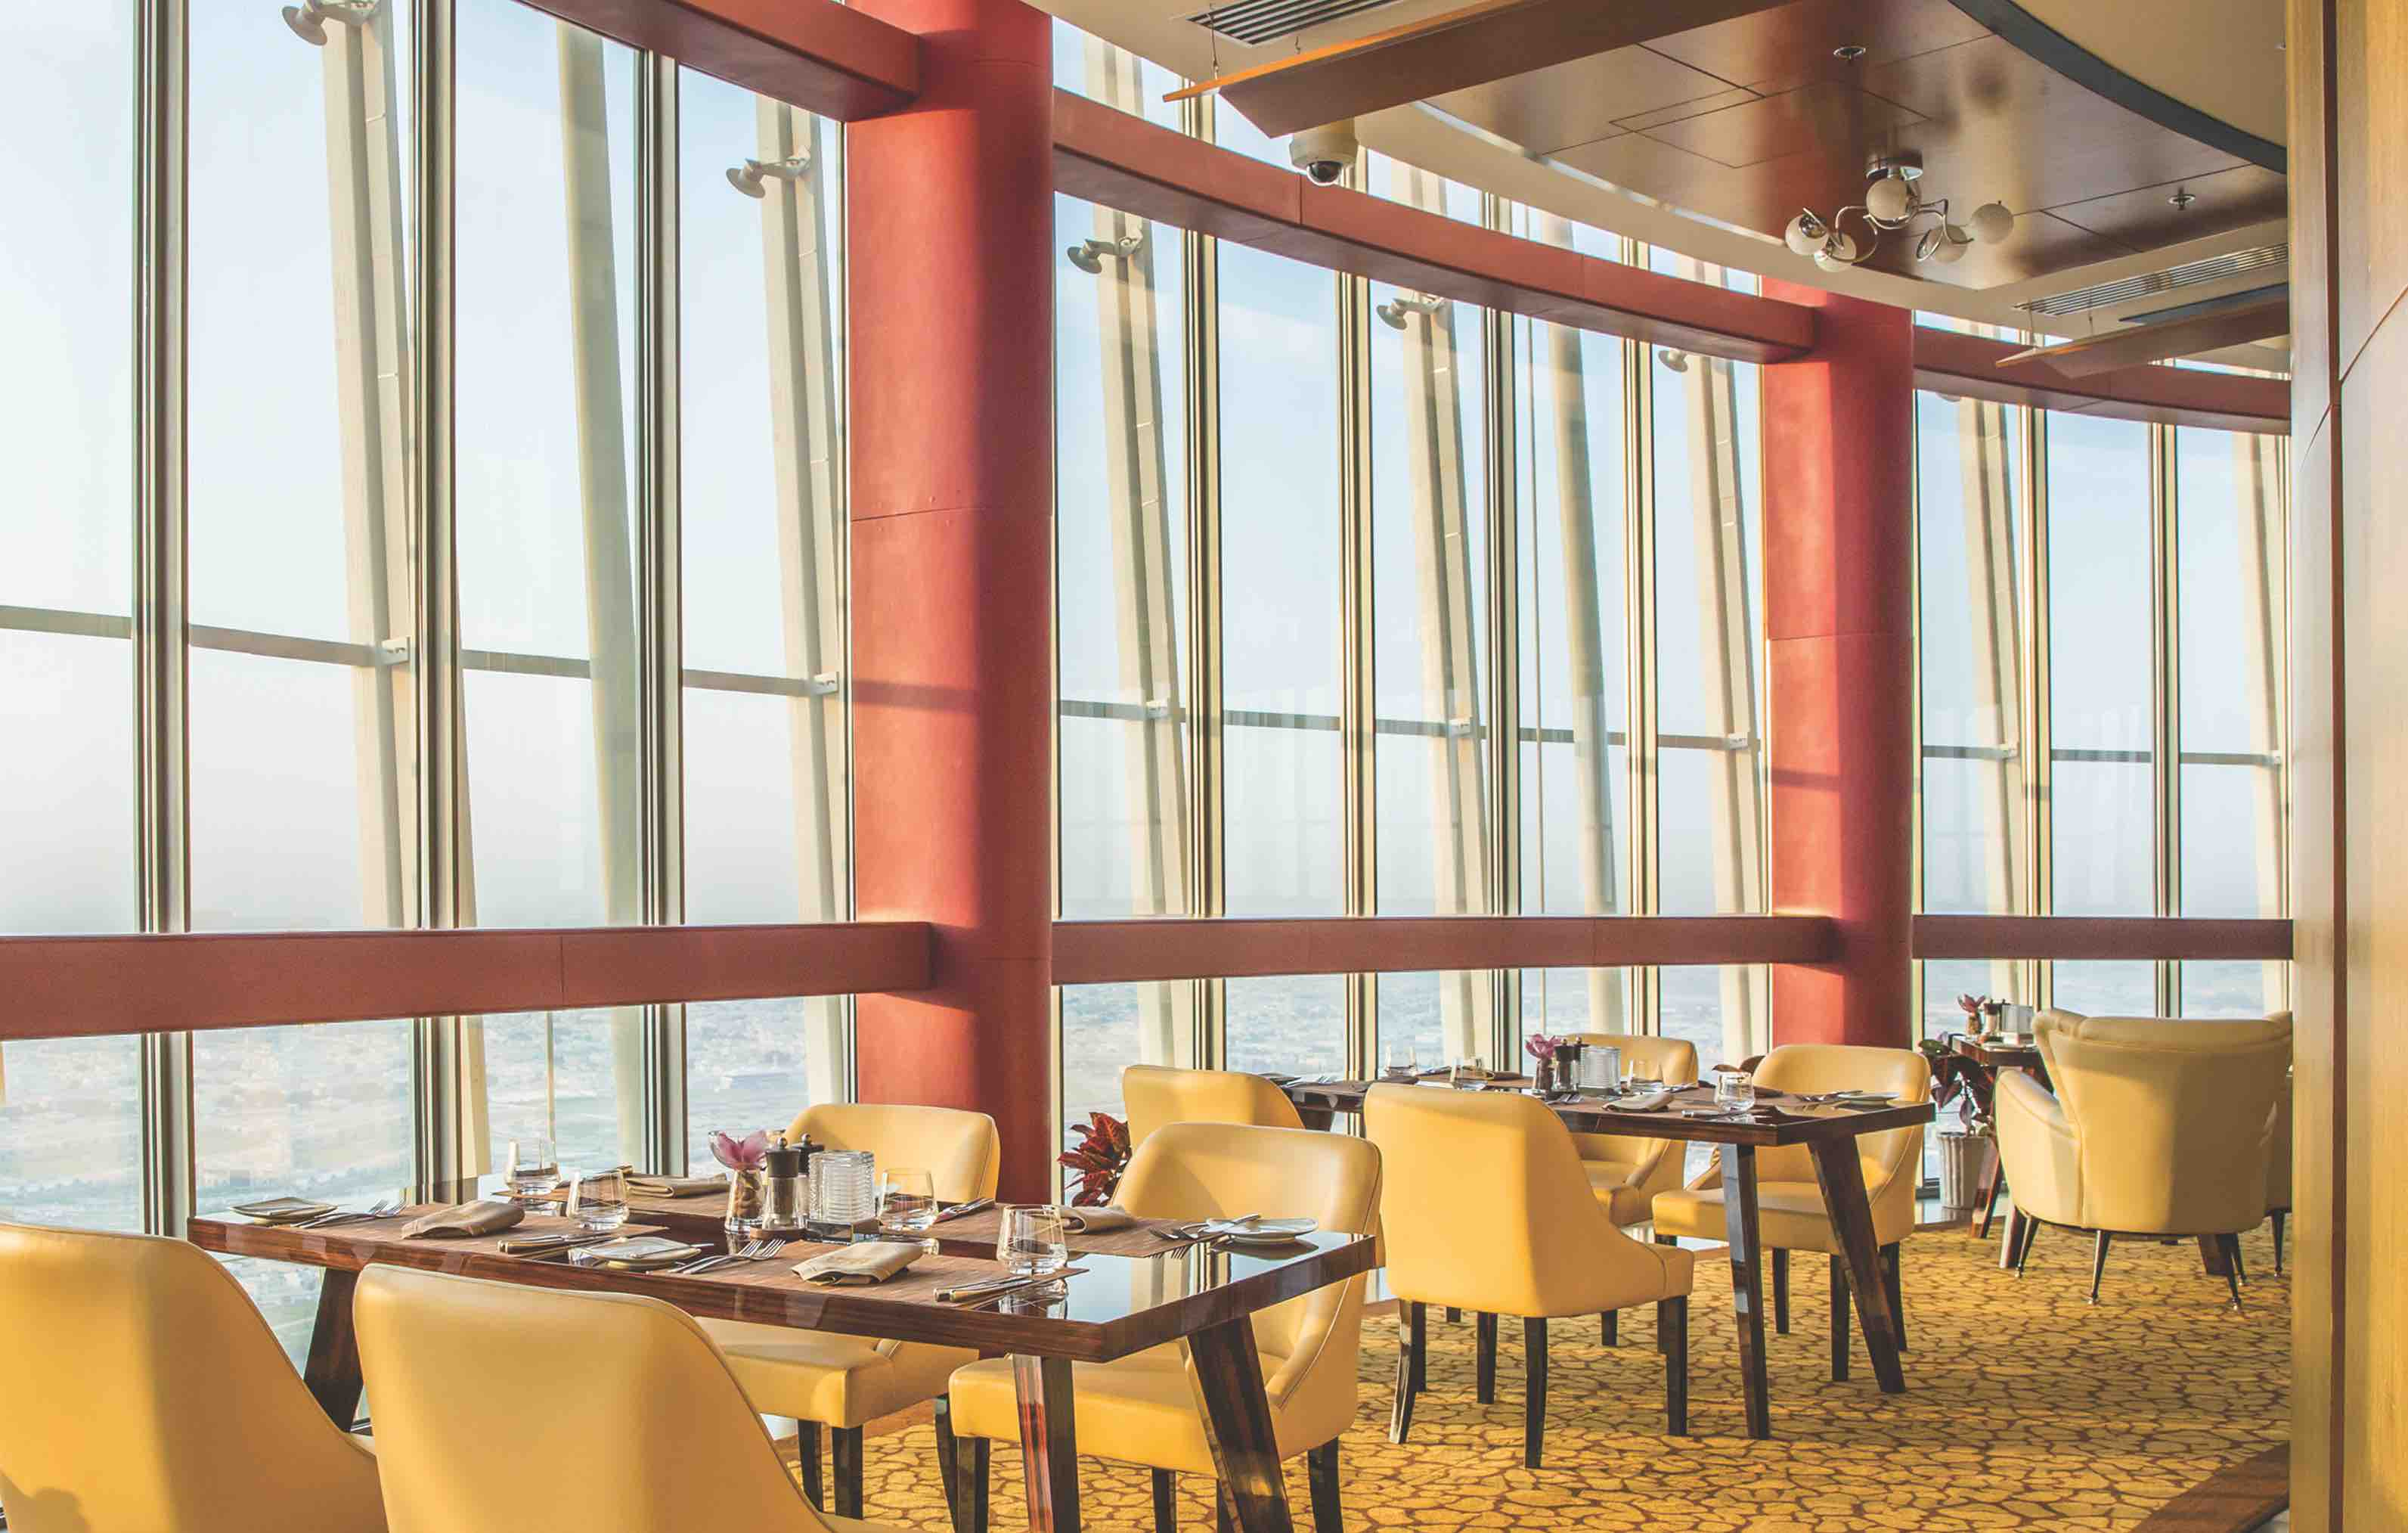 Dine in style at Three Sixty - Doha's only revolving restaurant